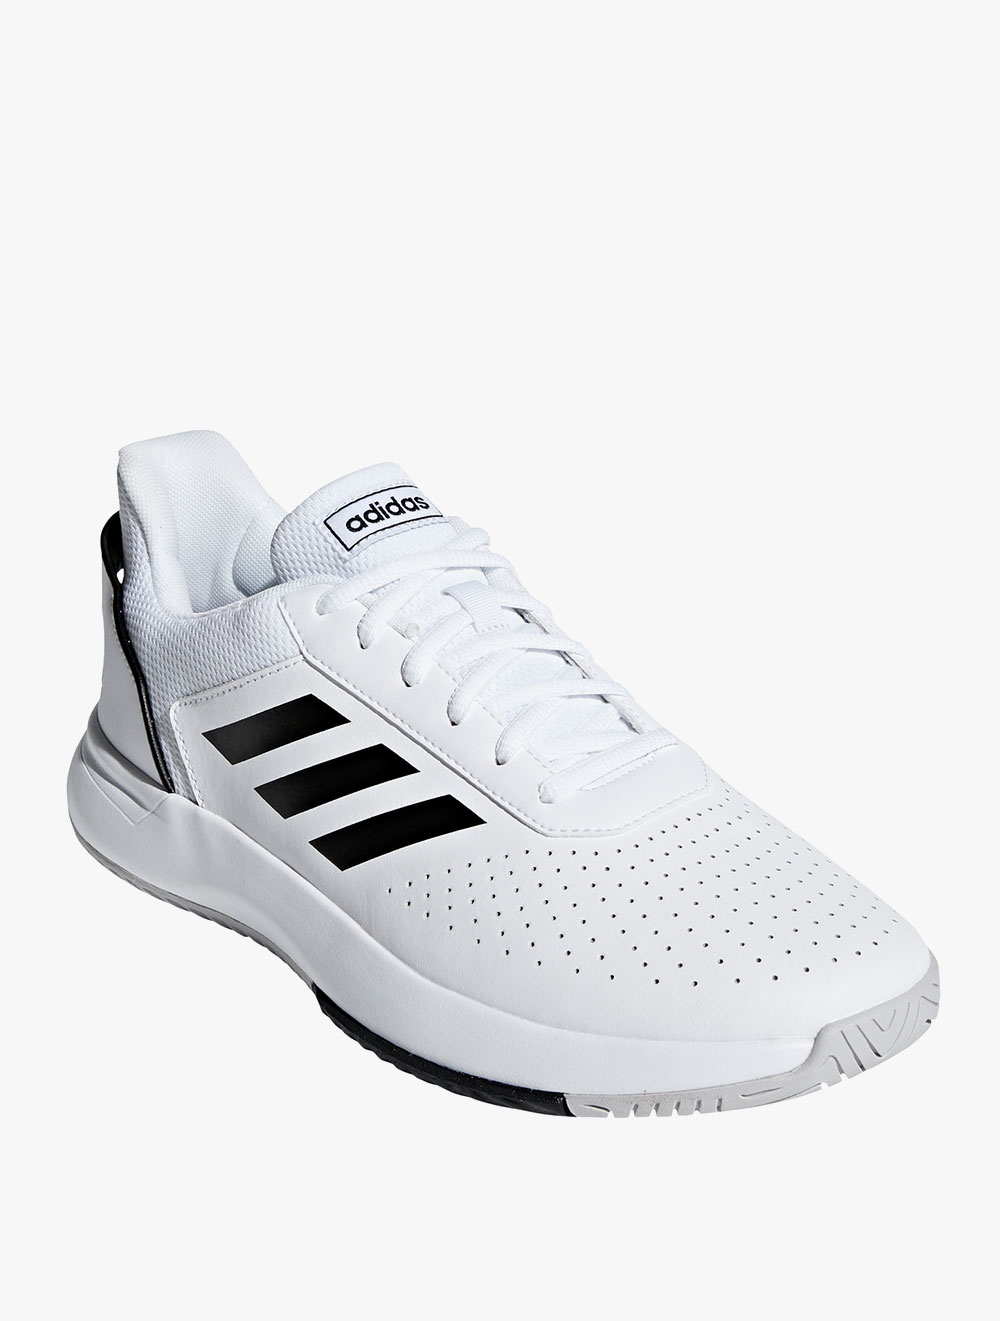 b9a6635c82dd 01-ADIDAS-F34TEADI5-Adidas-Courtsmash-Mens-Tennis-Shoes-White.jpg